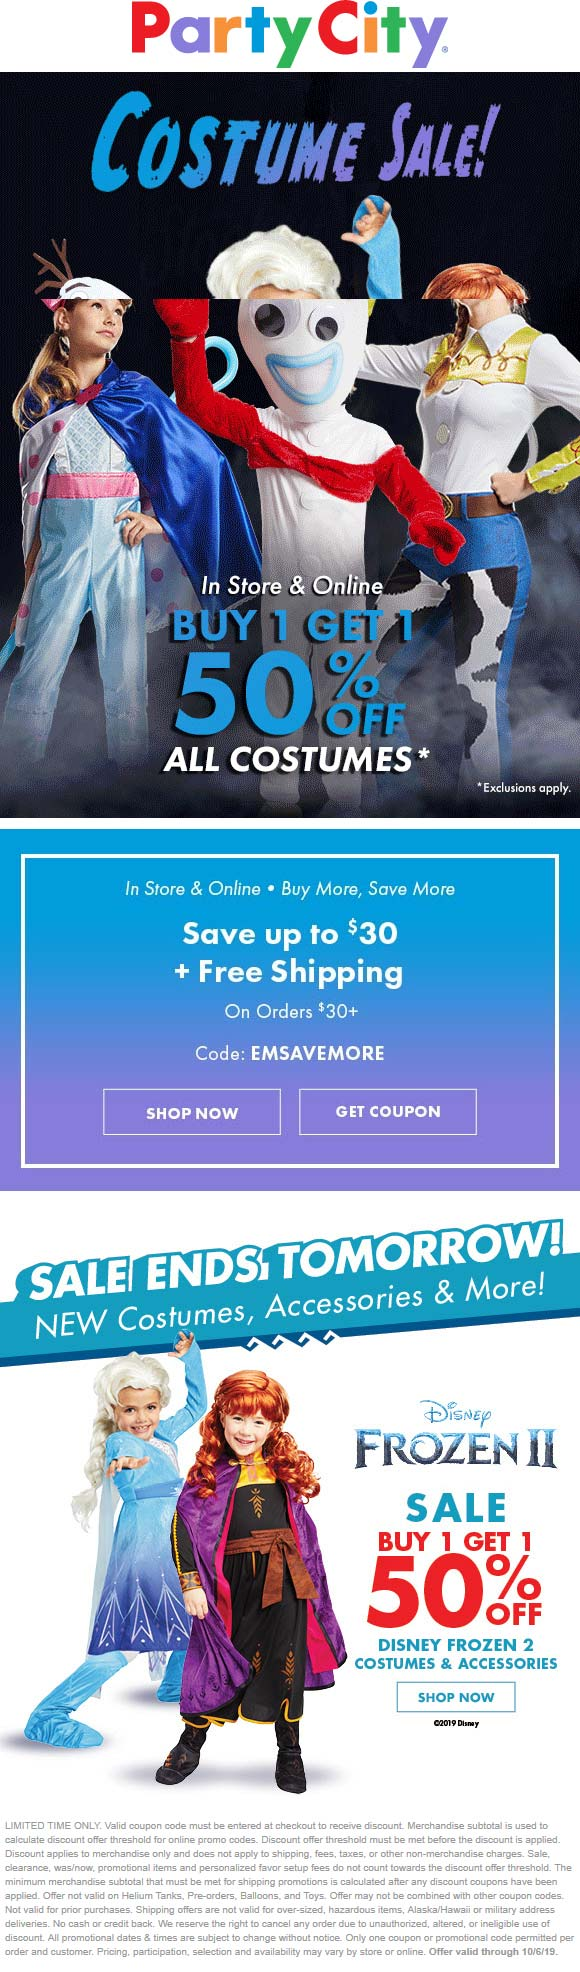 Party City Coupon January 2020 Second costume 50% off today at Party City, ditto online